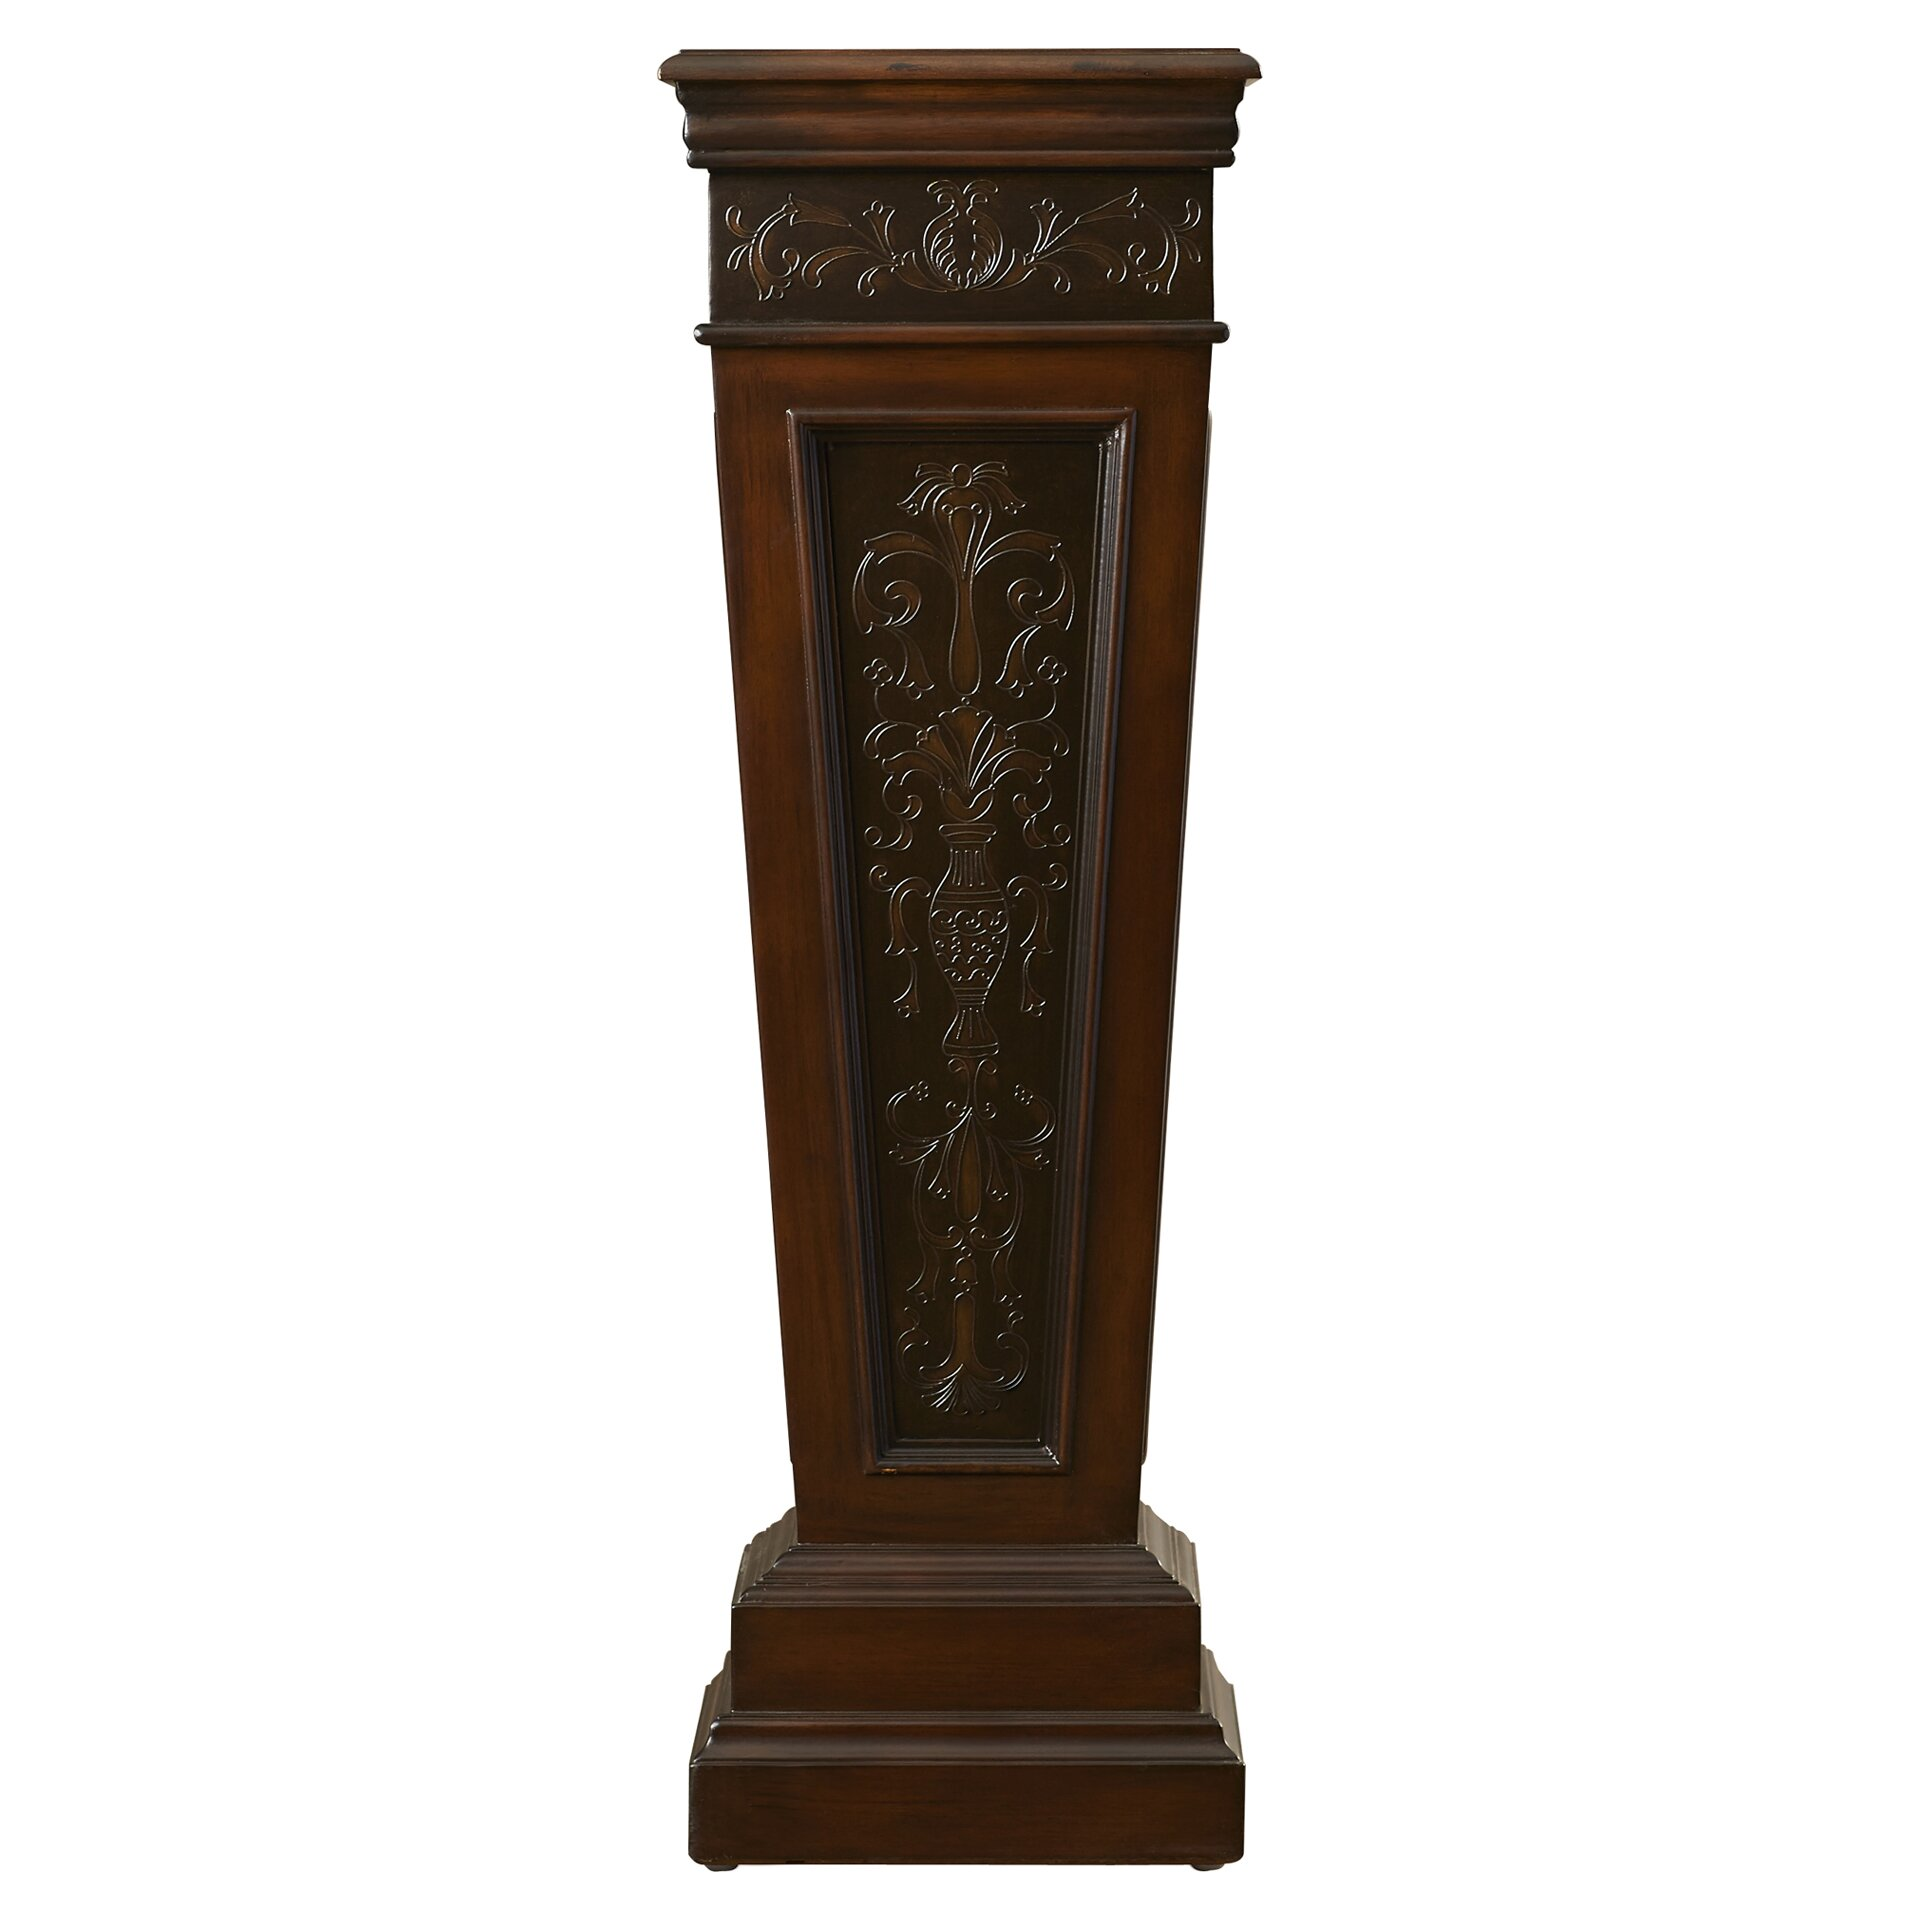 Pedestal Plant Stands ~ Astoria grand warner robins pedestal plant stand reviews